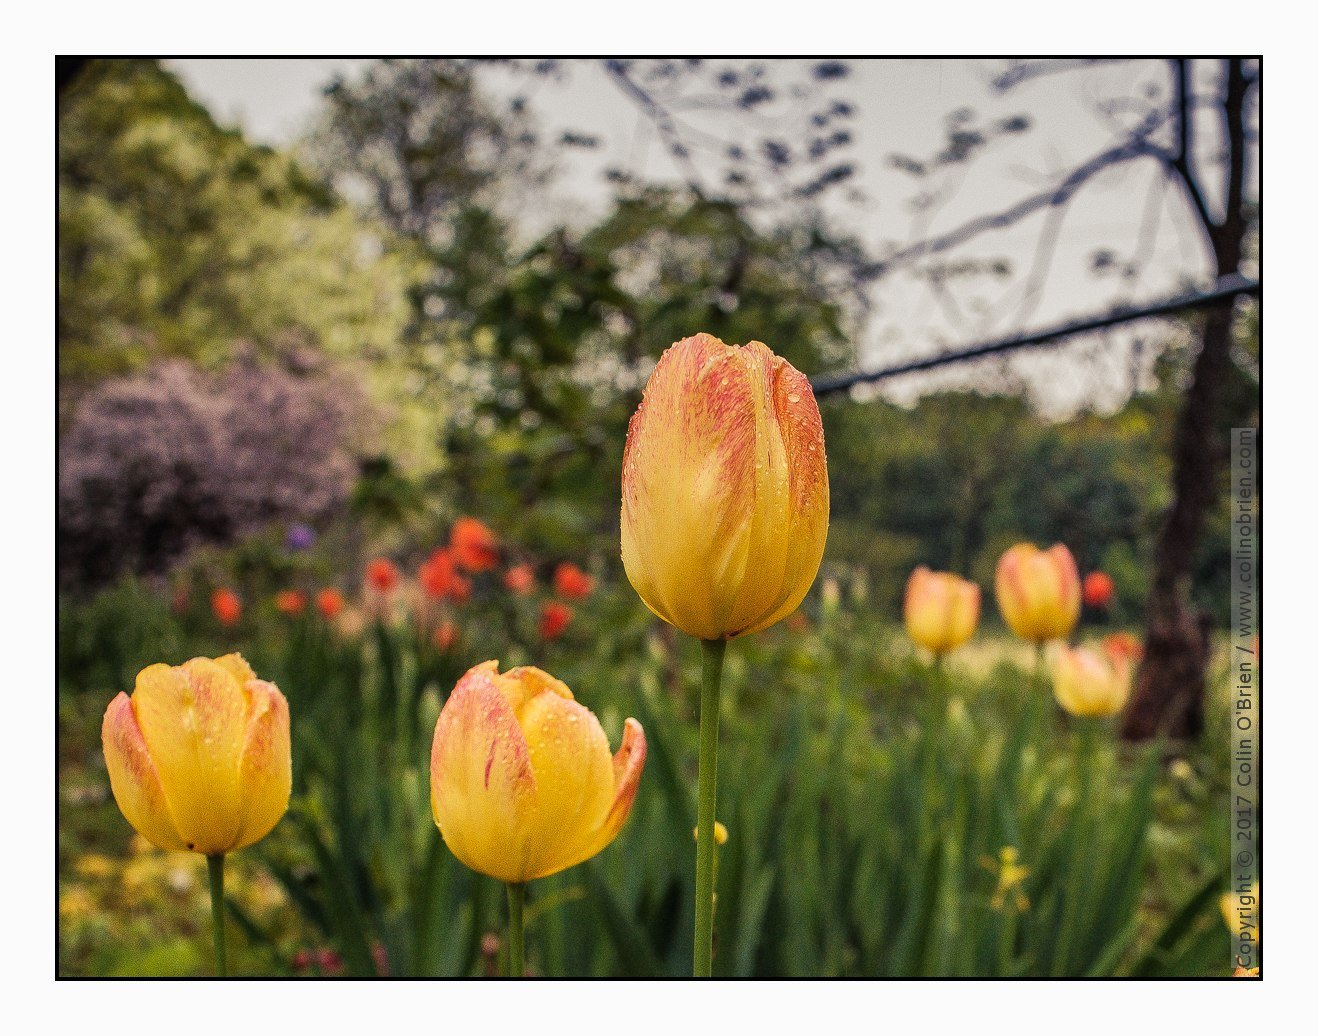 Tulips lead the dance after the rain